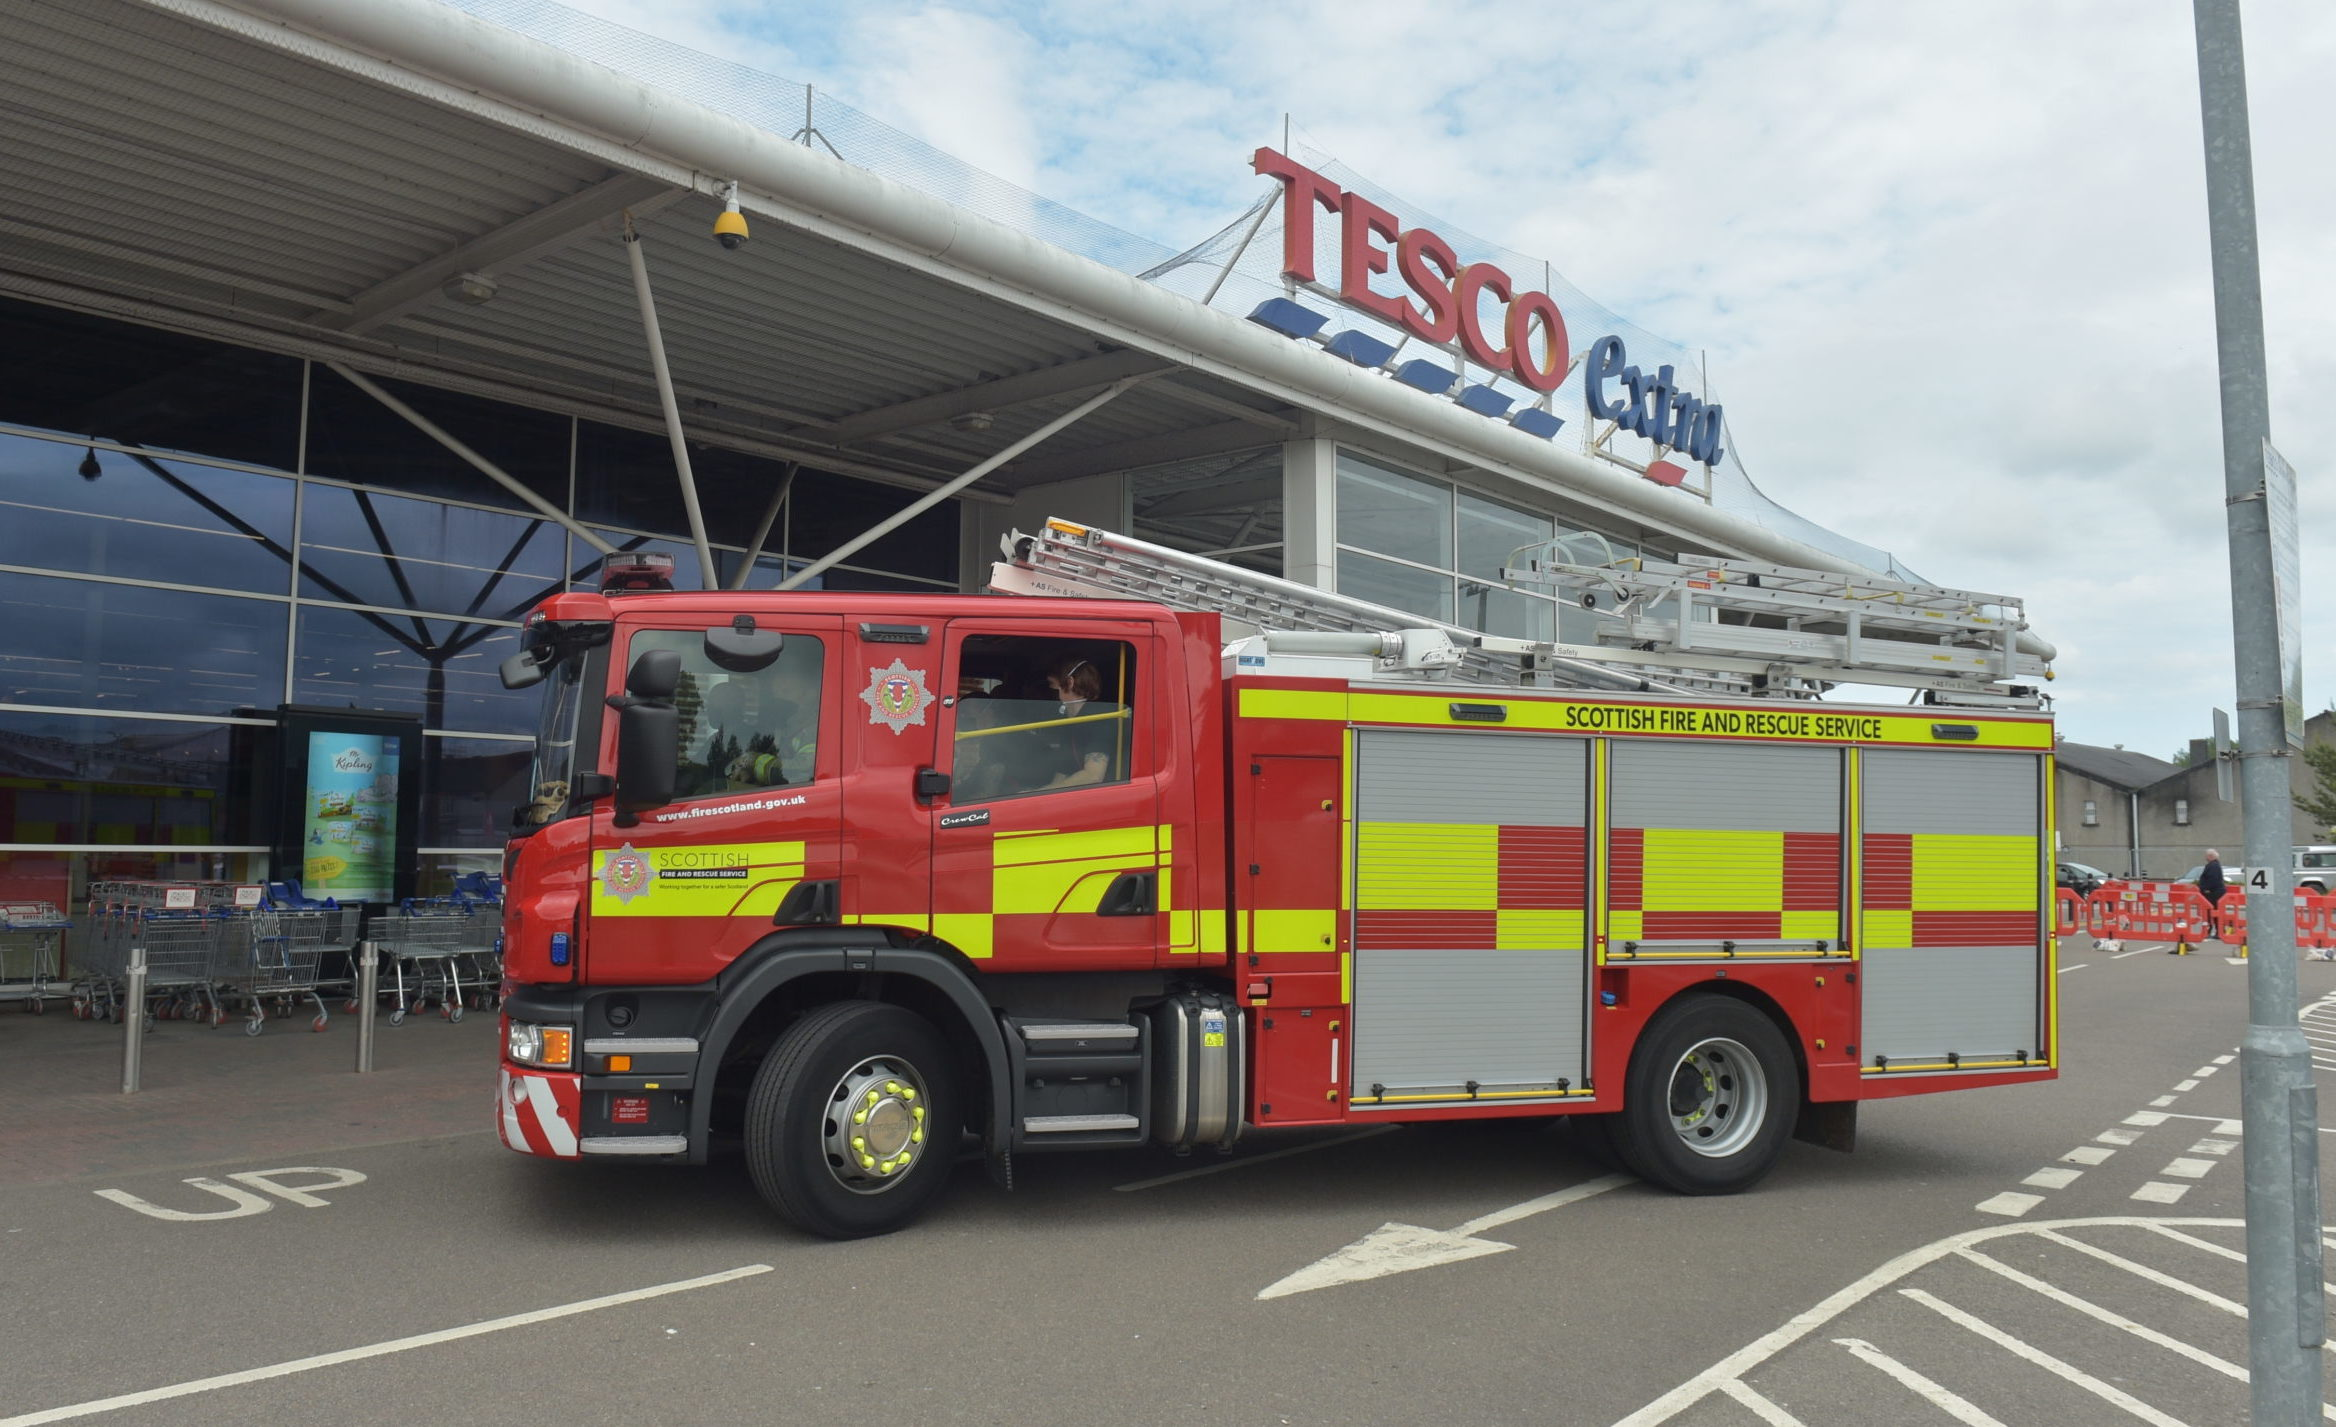 The scene at Tesco in Elgin. Picture by Jason Hedges.